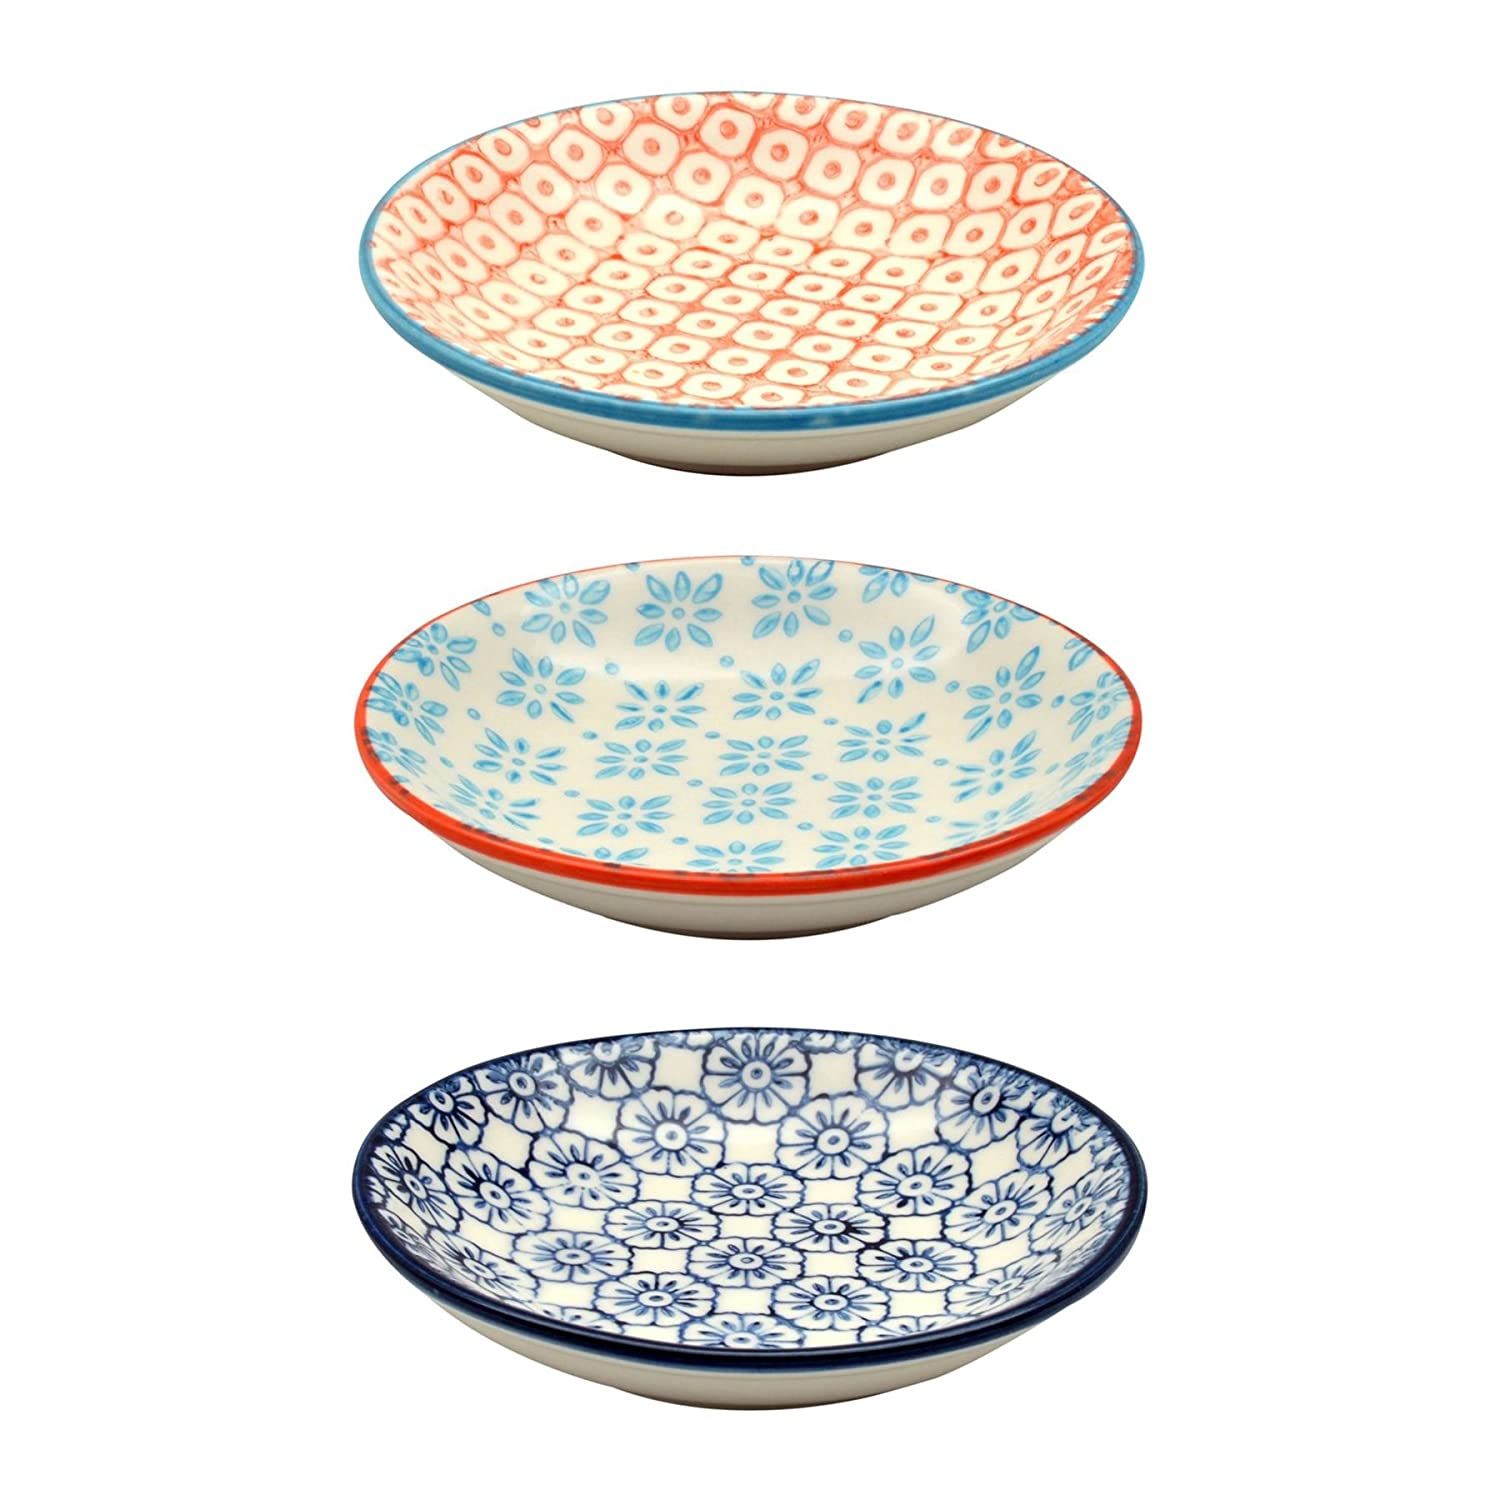 Small Patterned Rice / Soy Sauce / Olive Oil / Dipping Dish - 101mm - Set of 3 Nicola Spring